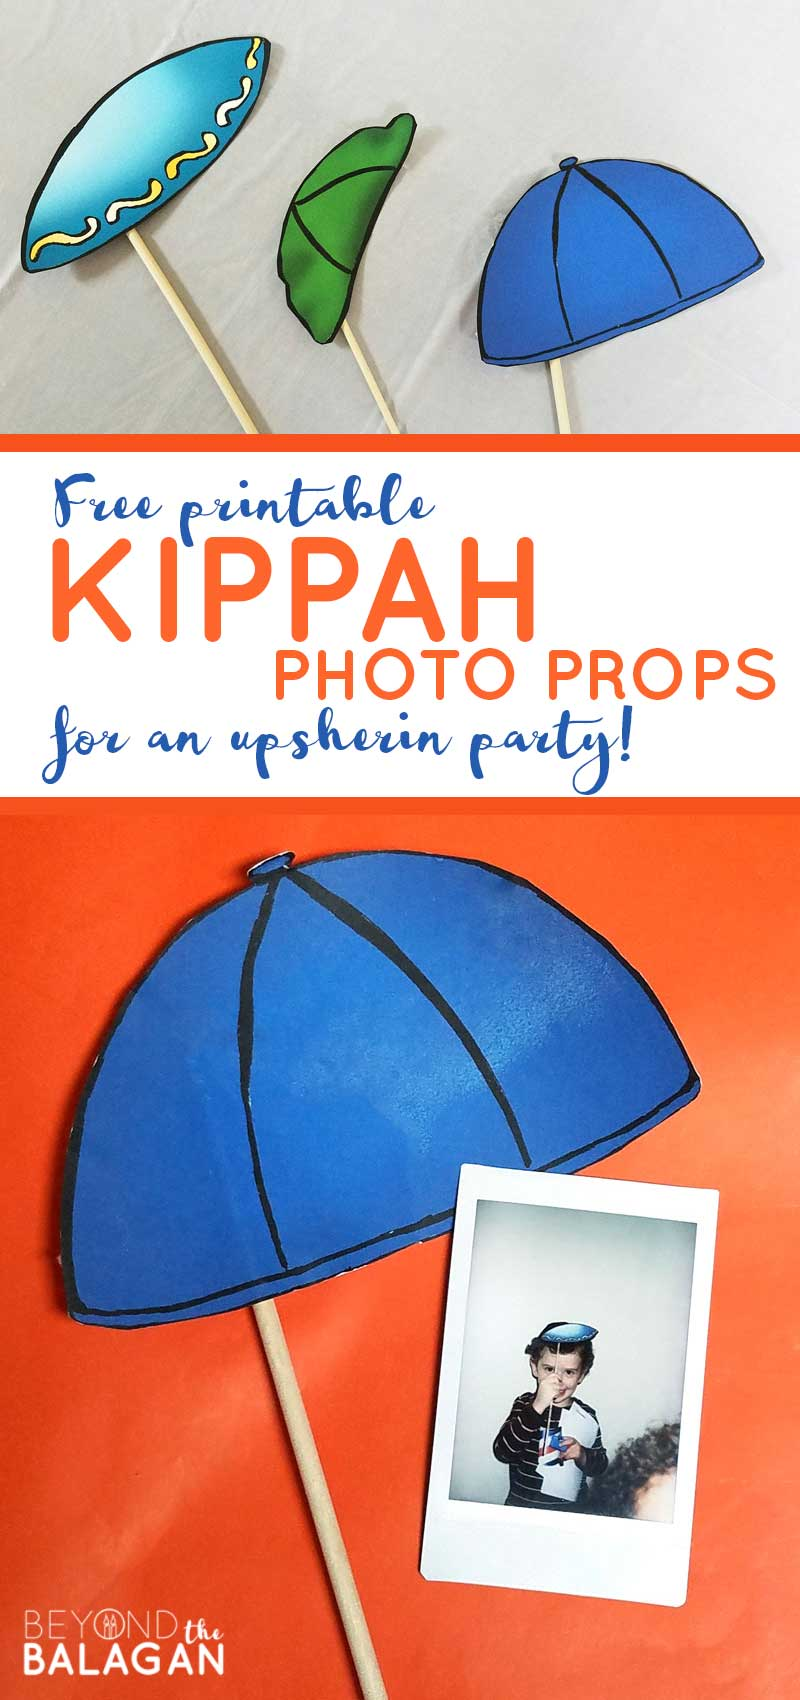 You'll love these amazing upsherin ideas! These free printable kippah photo props are really sweet for that third birthday party or even for your hanukkah party. #upsherin #kippah #beyondthebalagan